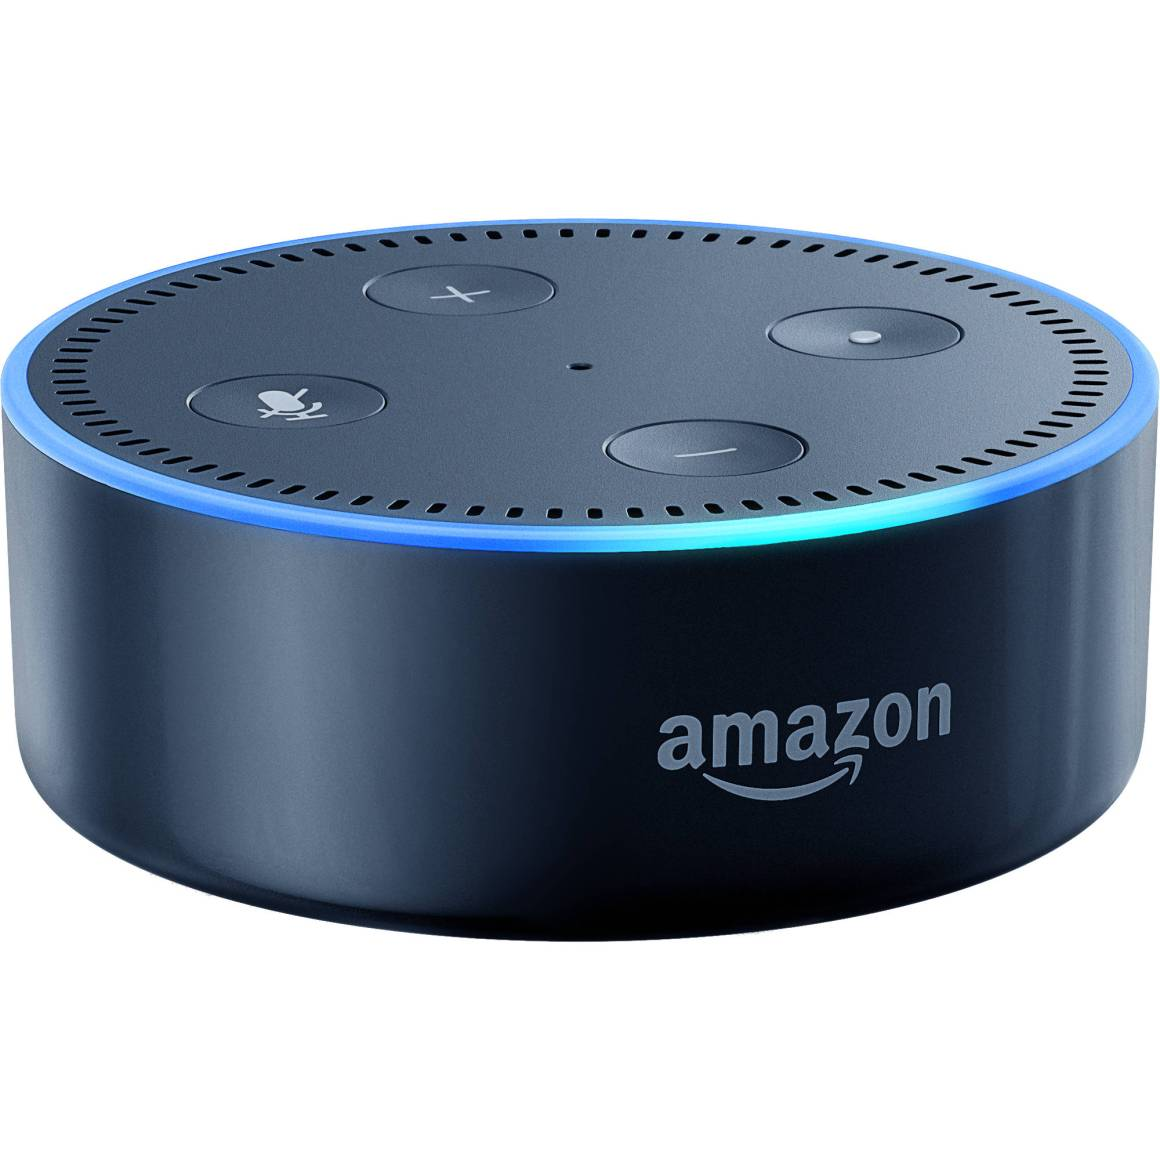 How can the Amazon Echo Dot assist disabled people?